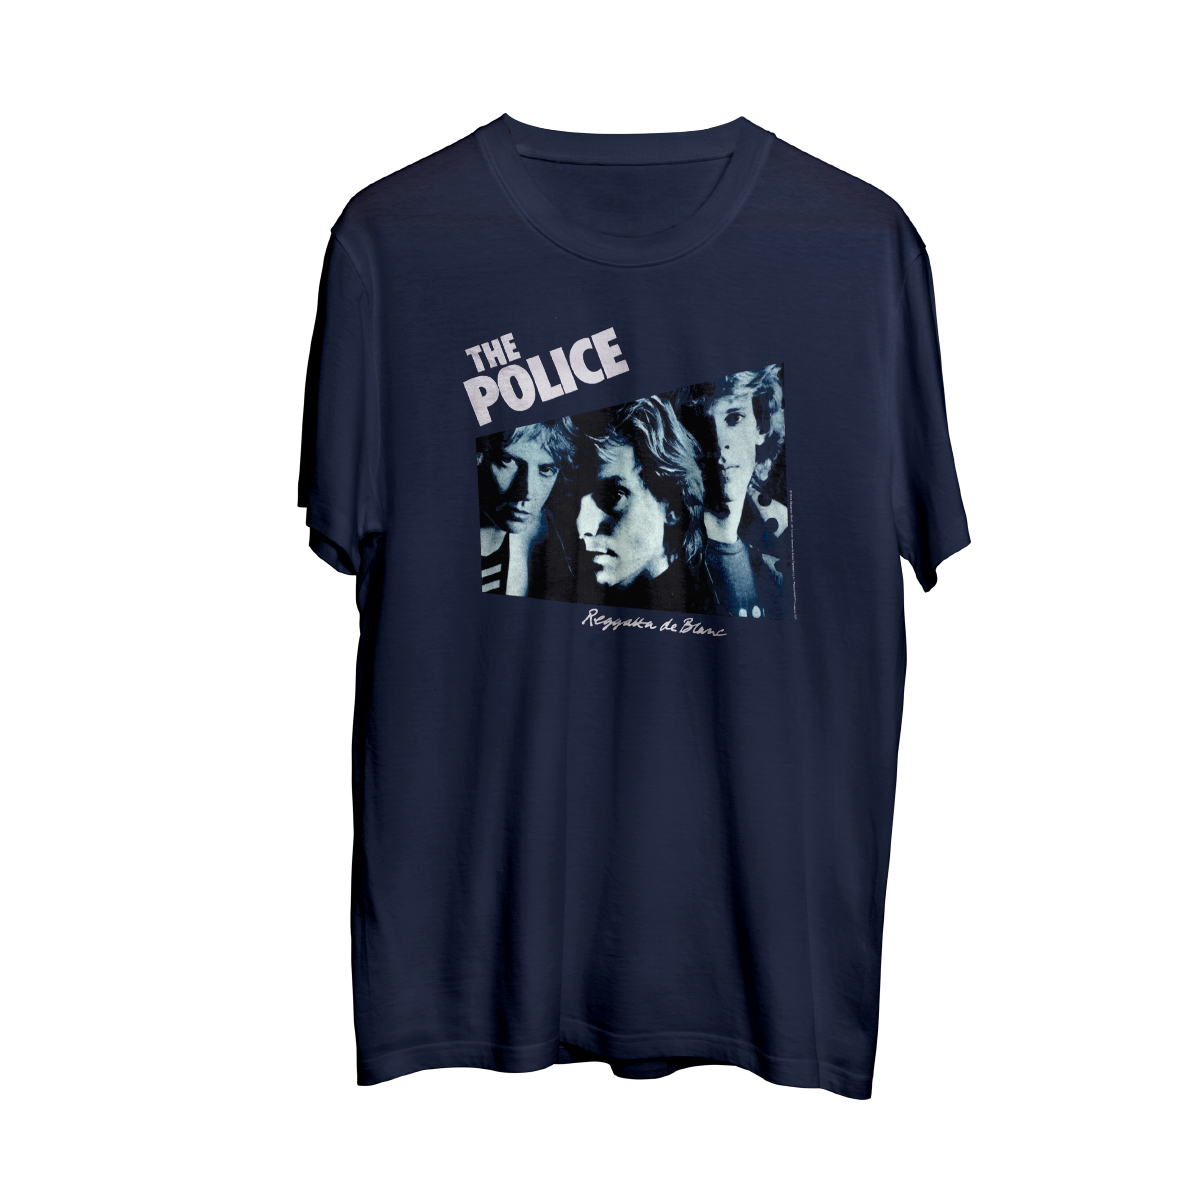 The Police Reggatta de Blanc Photo T-Shirt